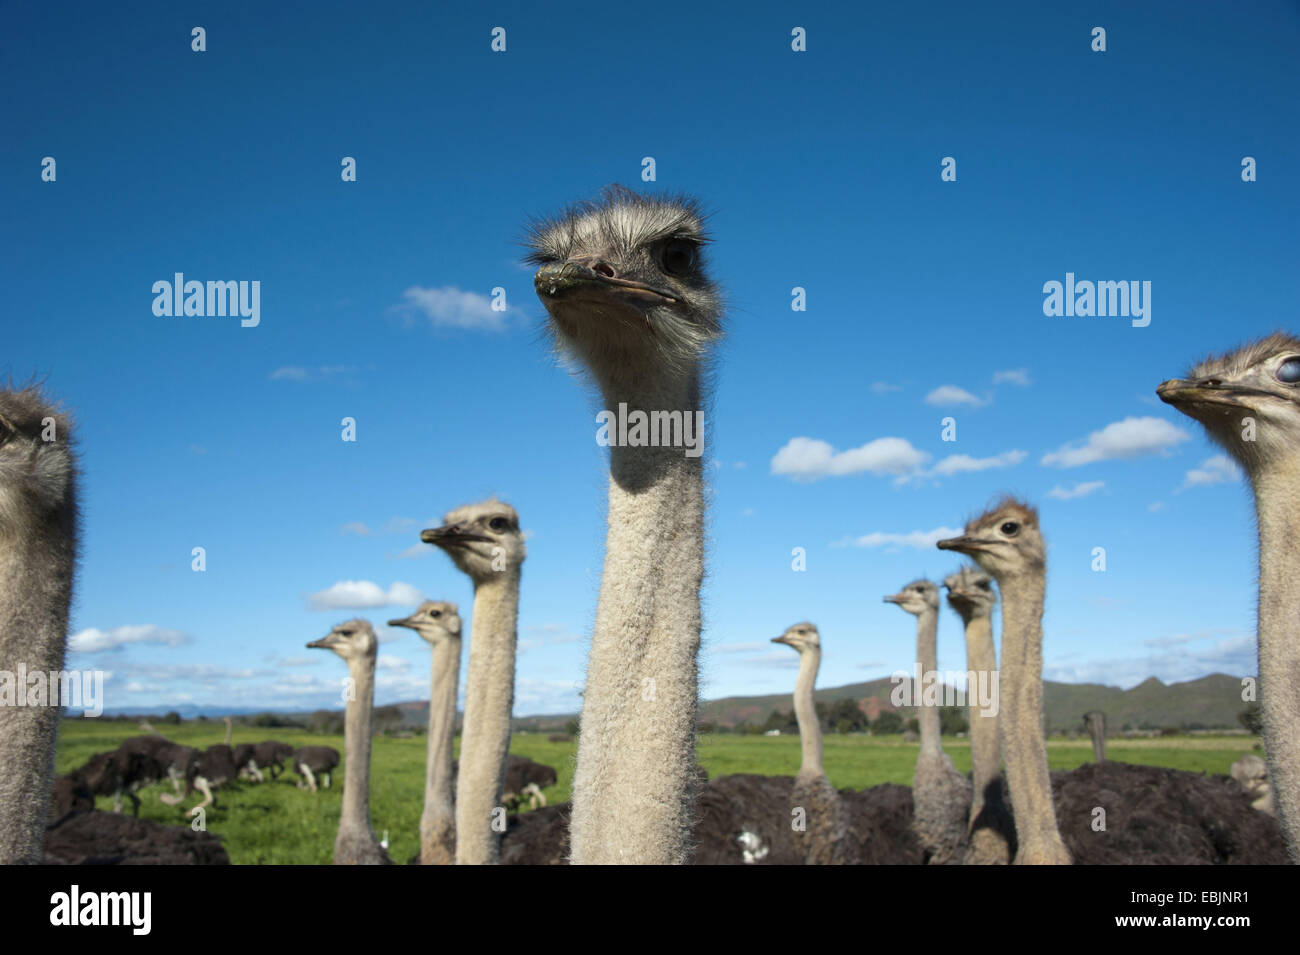 ostrich (Struthio camelus), flock of ostriches, South Africa, Western Cape, Oudtshoorn - Stock Image